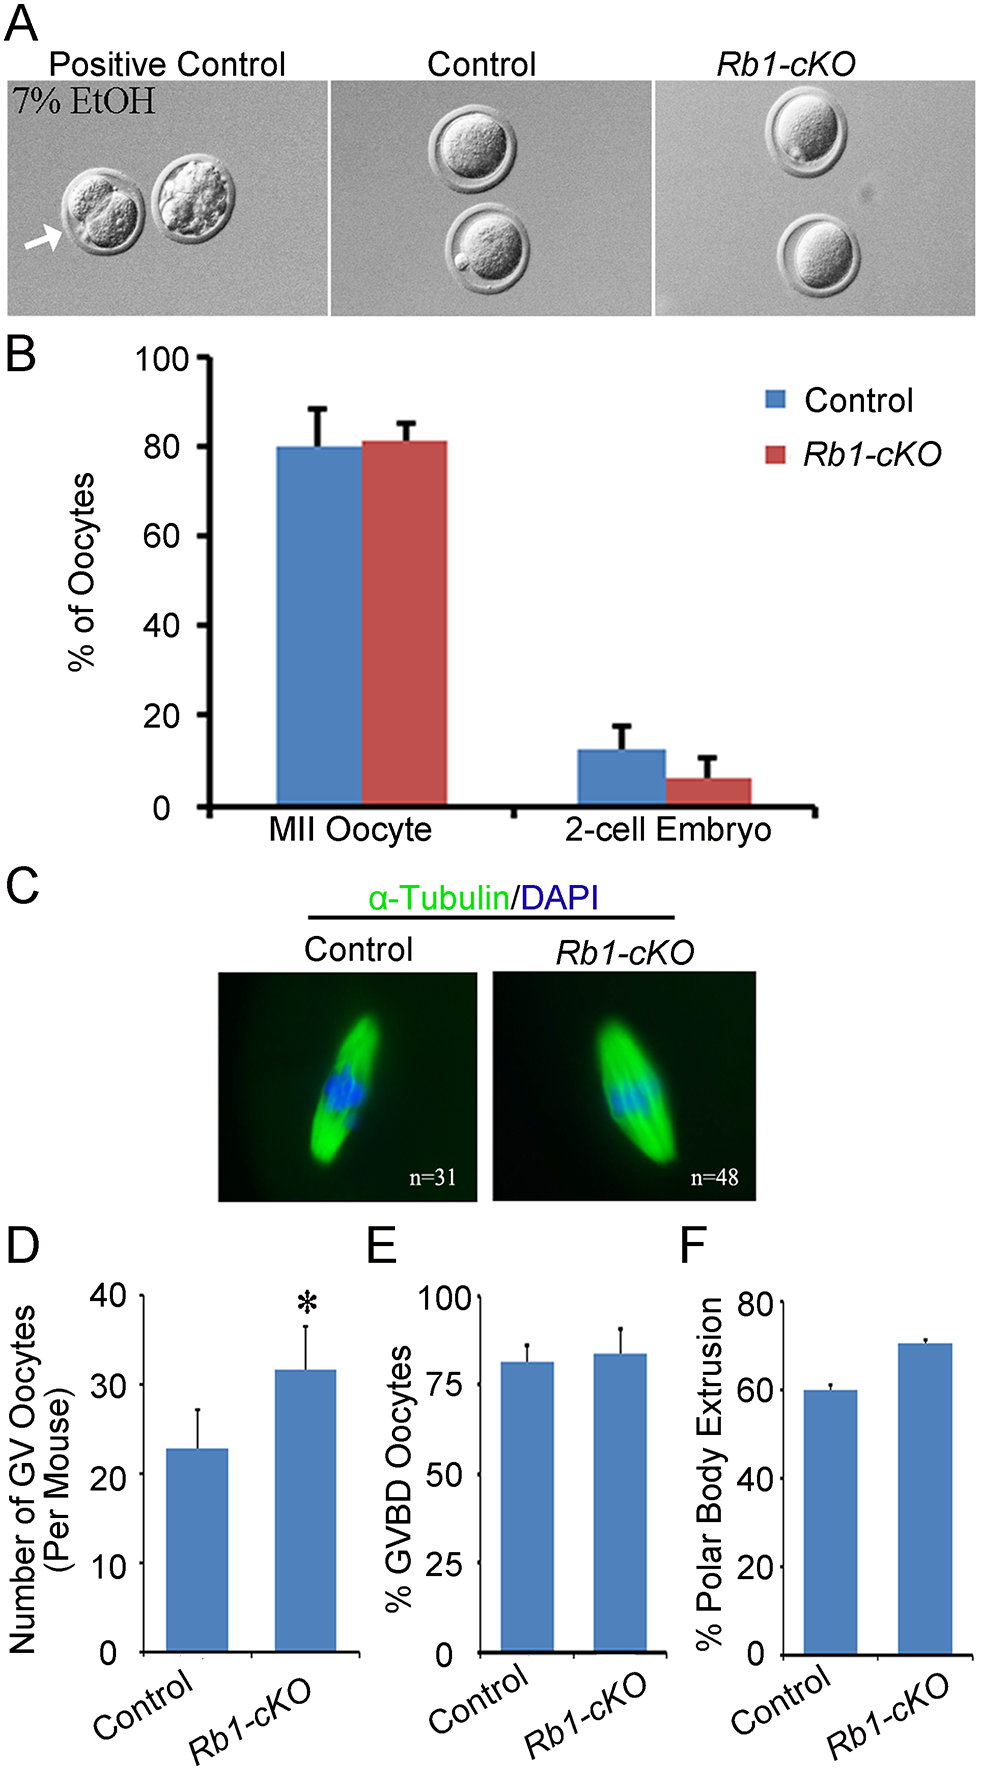 Propensity for parthenogenetic activation is not increased in <i>Rb1</i> deficient oocytes.